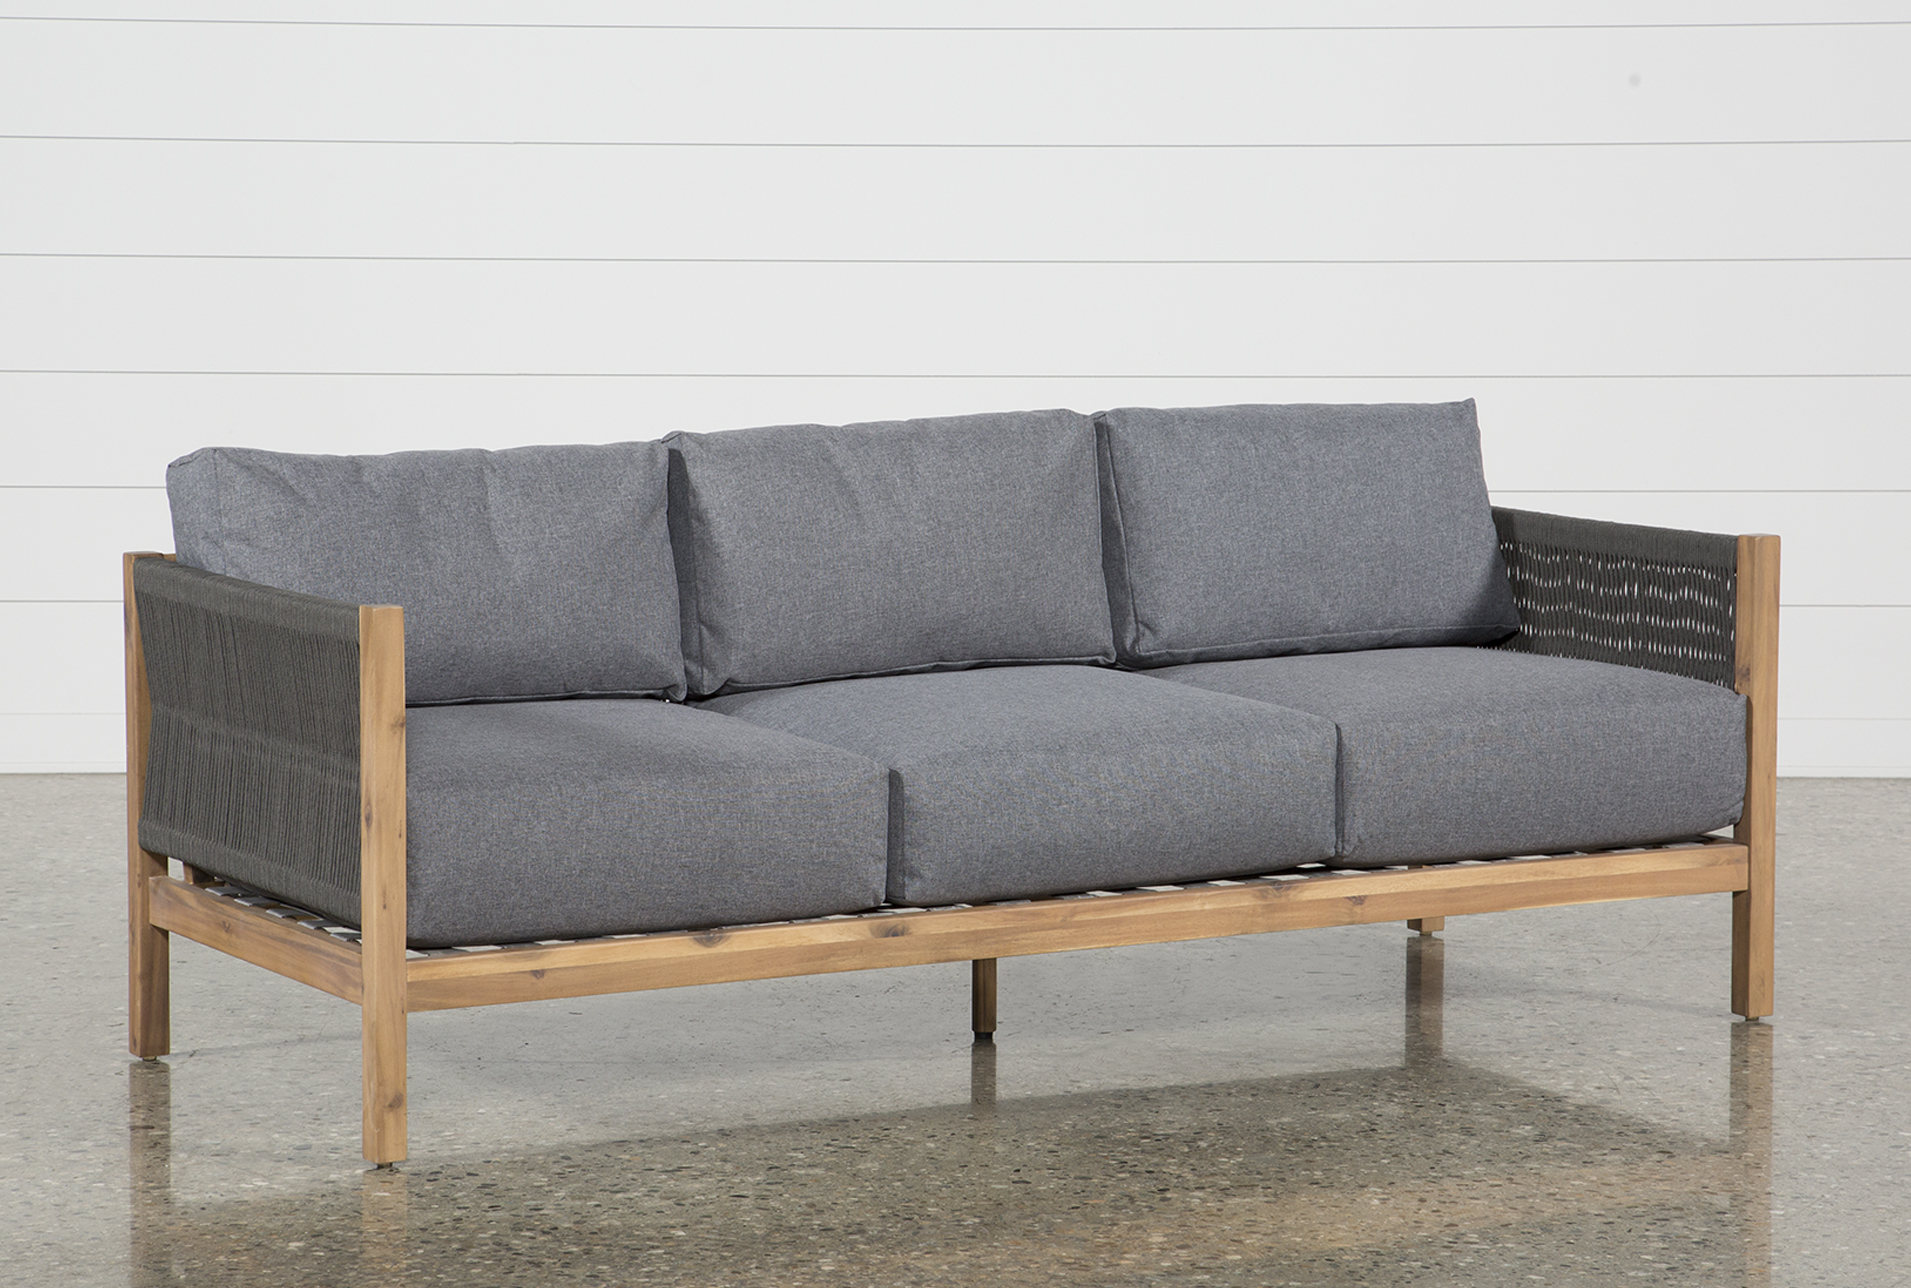 Charmant Outdoor Sienna Sofa